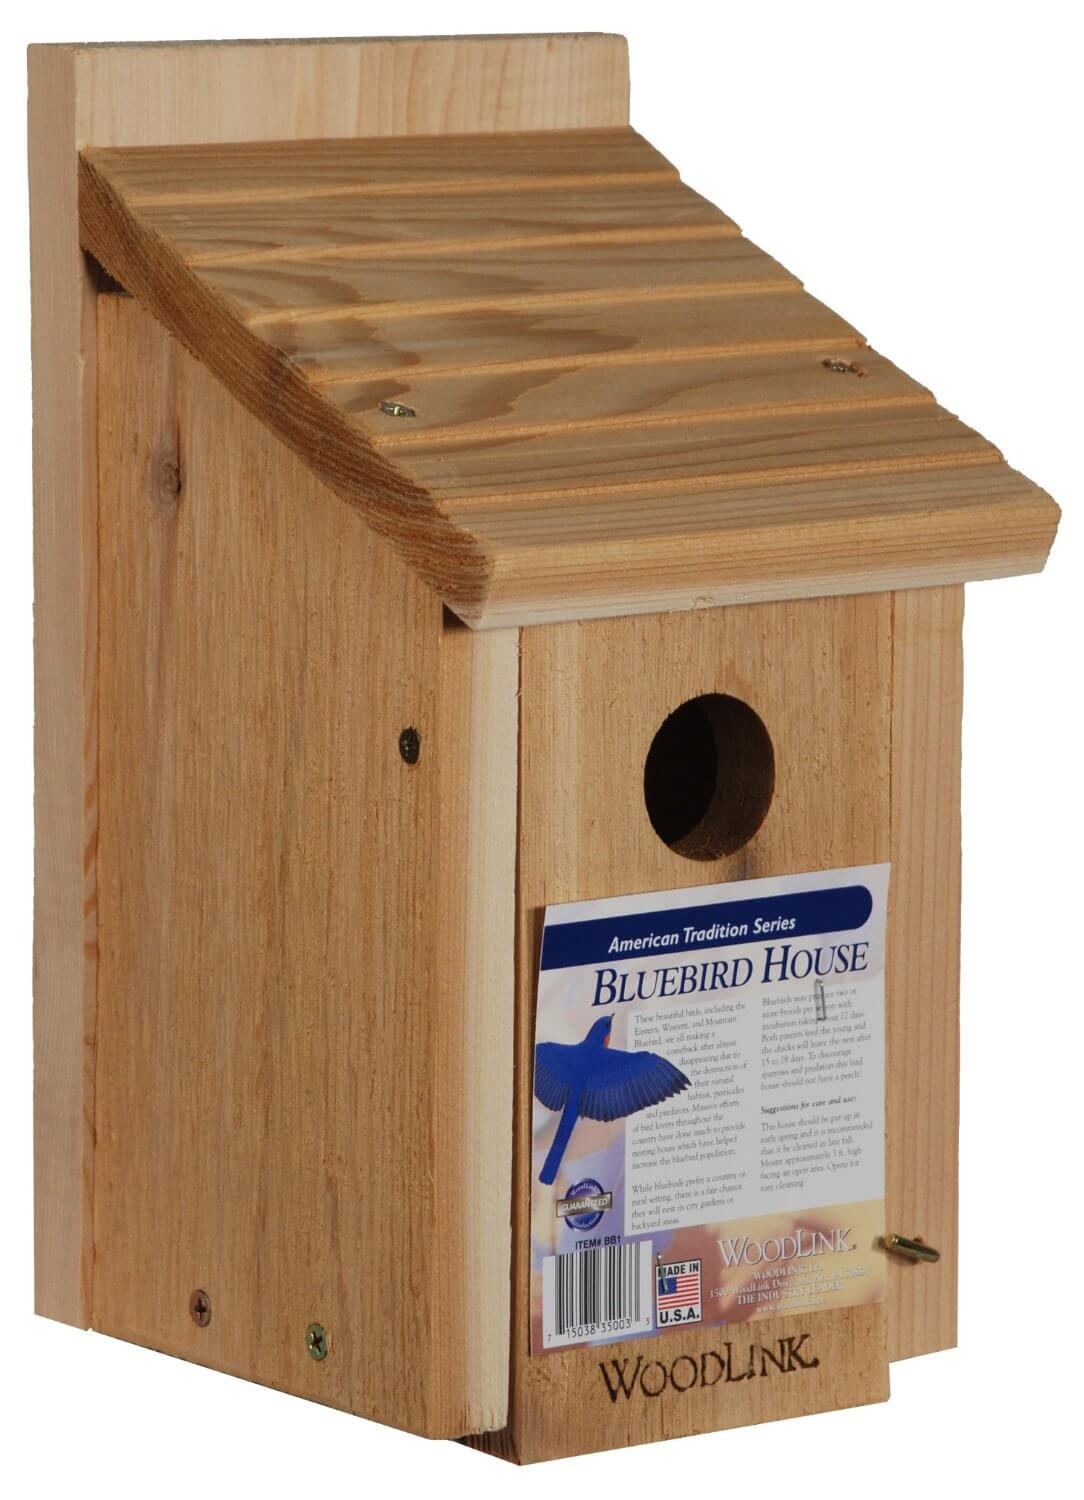 Simple bird house built with kiln-dried red cedar wood with sloped roof.